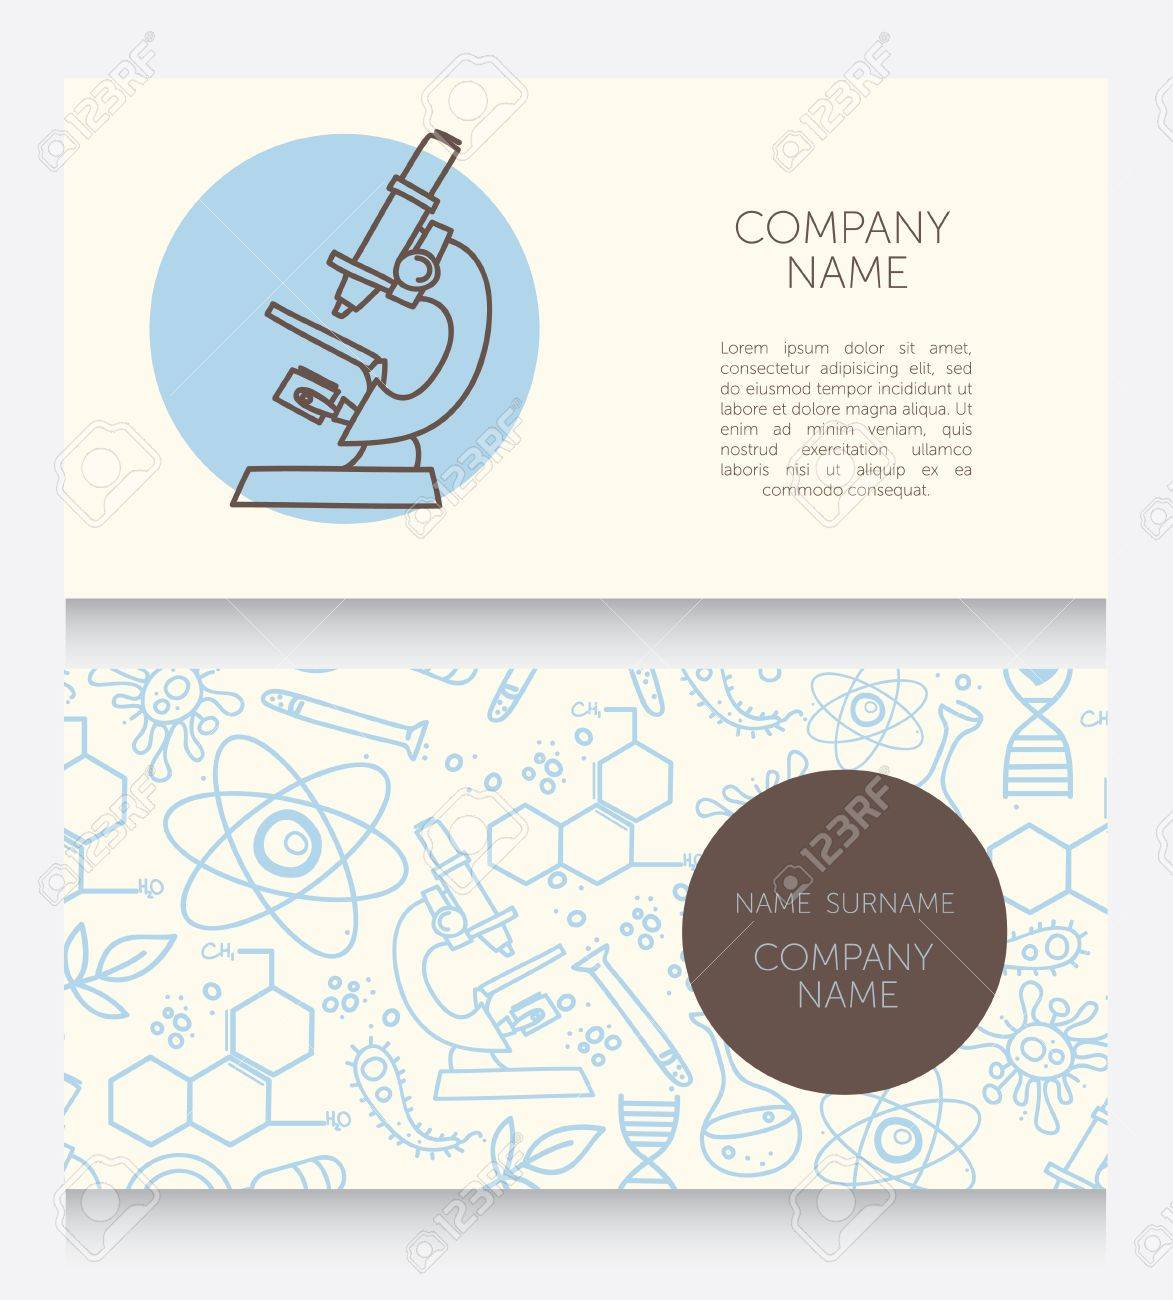 Business Cards Template For Medical Or Science Lab, Vector ...